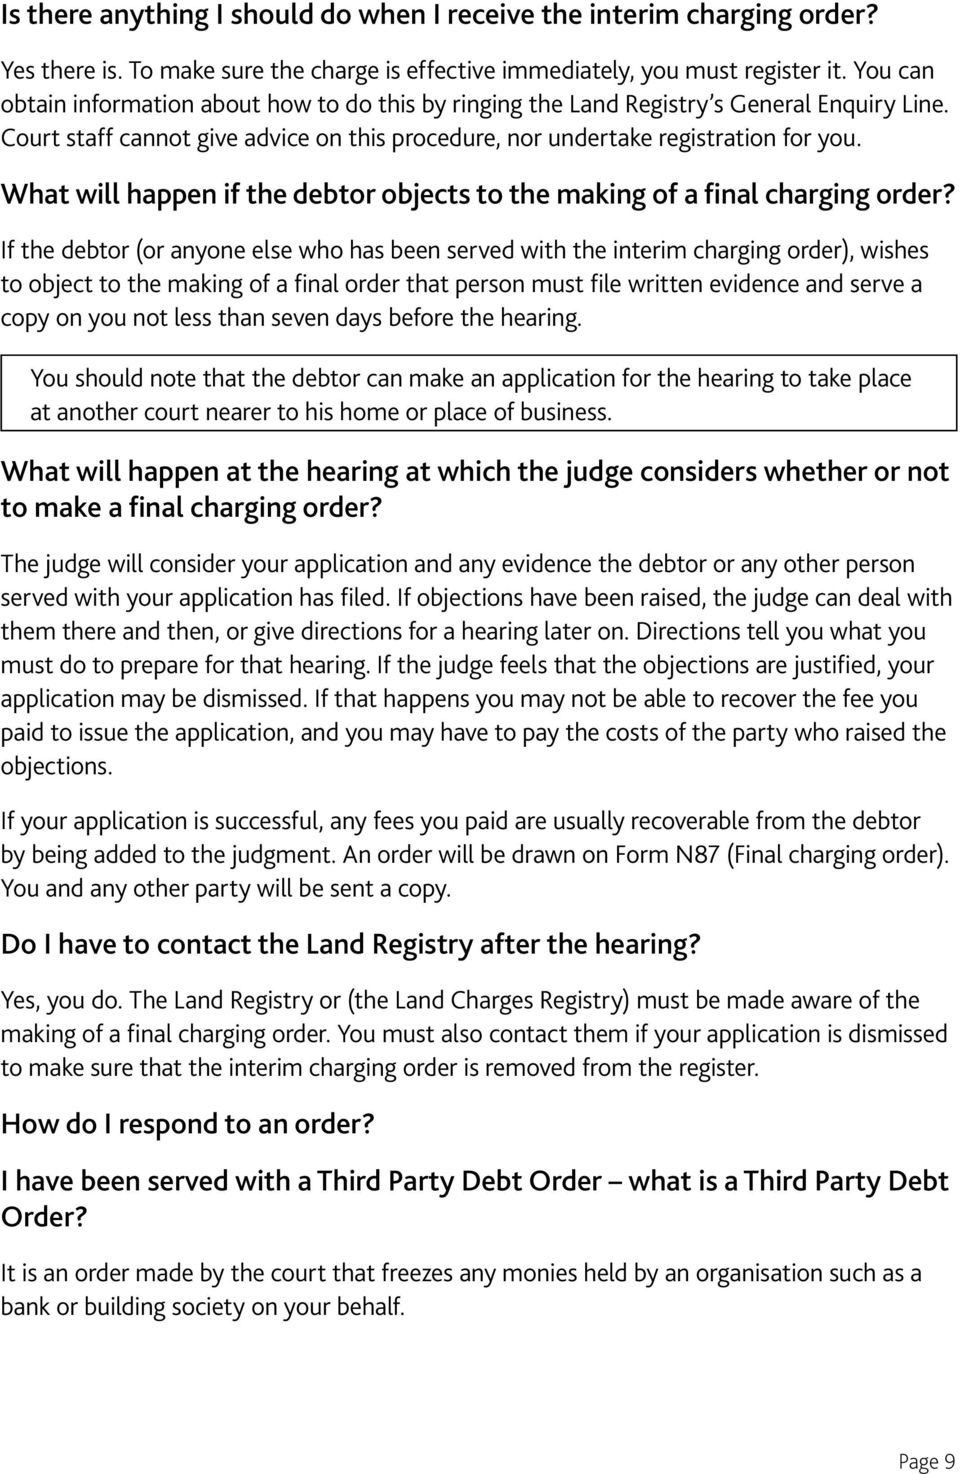 What will happen if the debtor objects to the making of a final charging order?